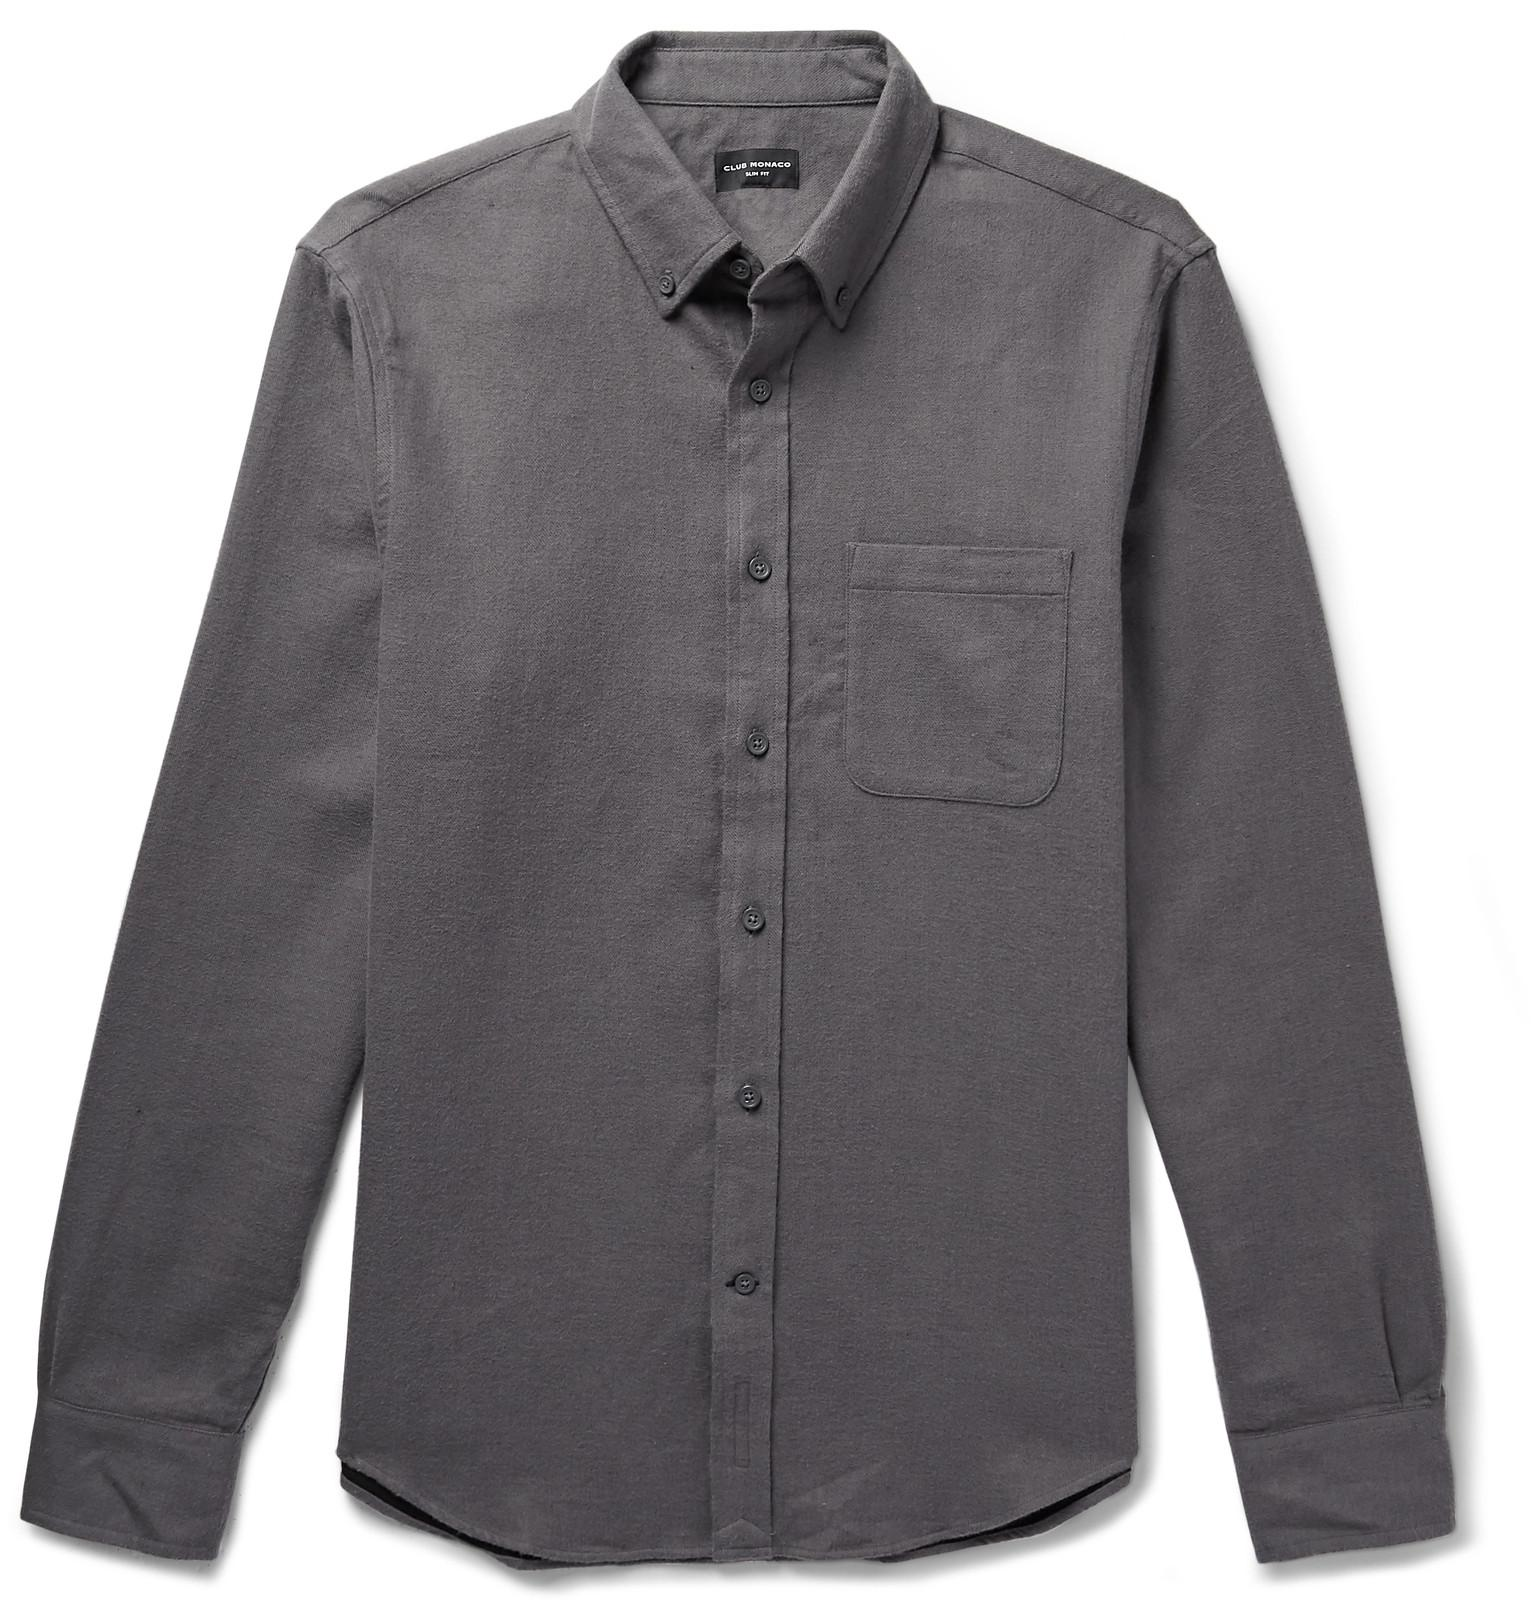 28d8eeaaf06 Club Monaco - Gray Slim-fit Button-down Collar Double-faced Cotton Shirt.  View fullscreen